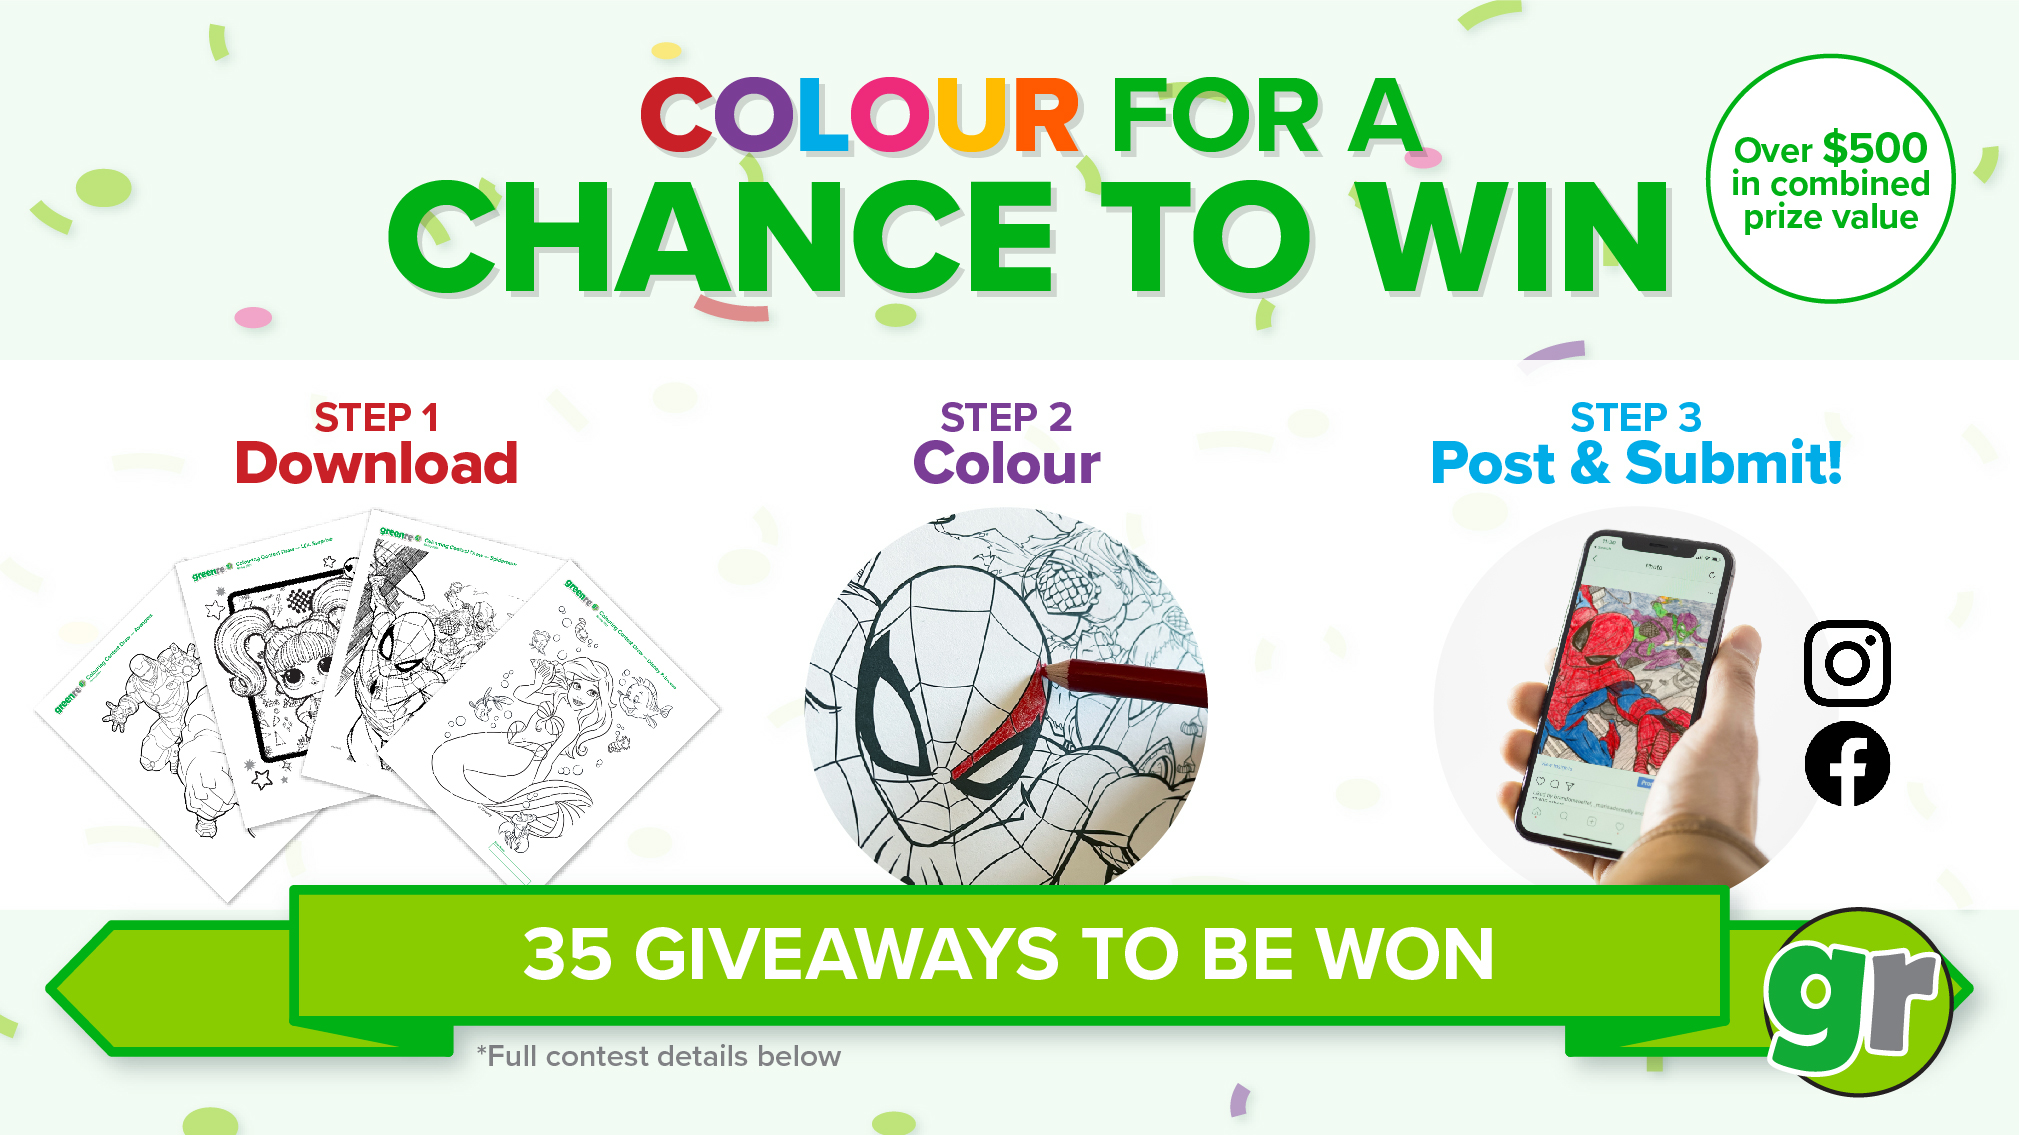 """""""Colour for a chance to win. Over $500 in combined prize value. Step 1 Download. Step 2 Colour. Step 3 Post & submit!. 35 Giveaways to be won. Full contest details below."""""""